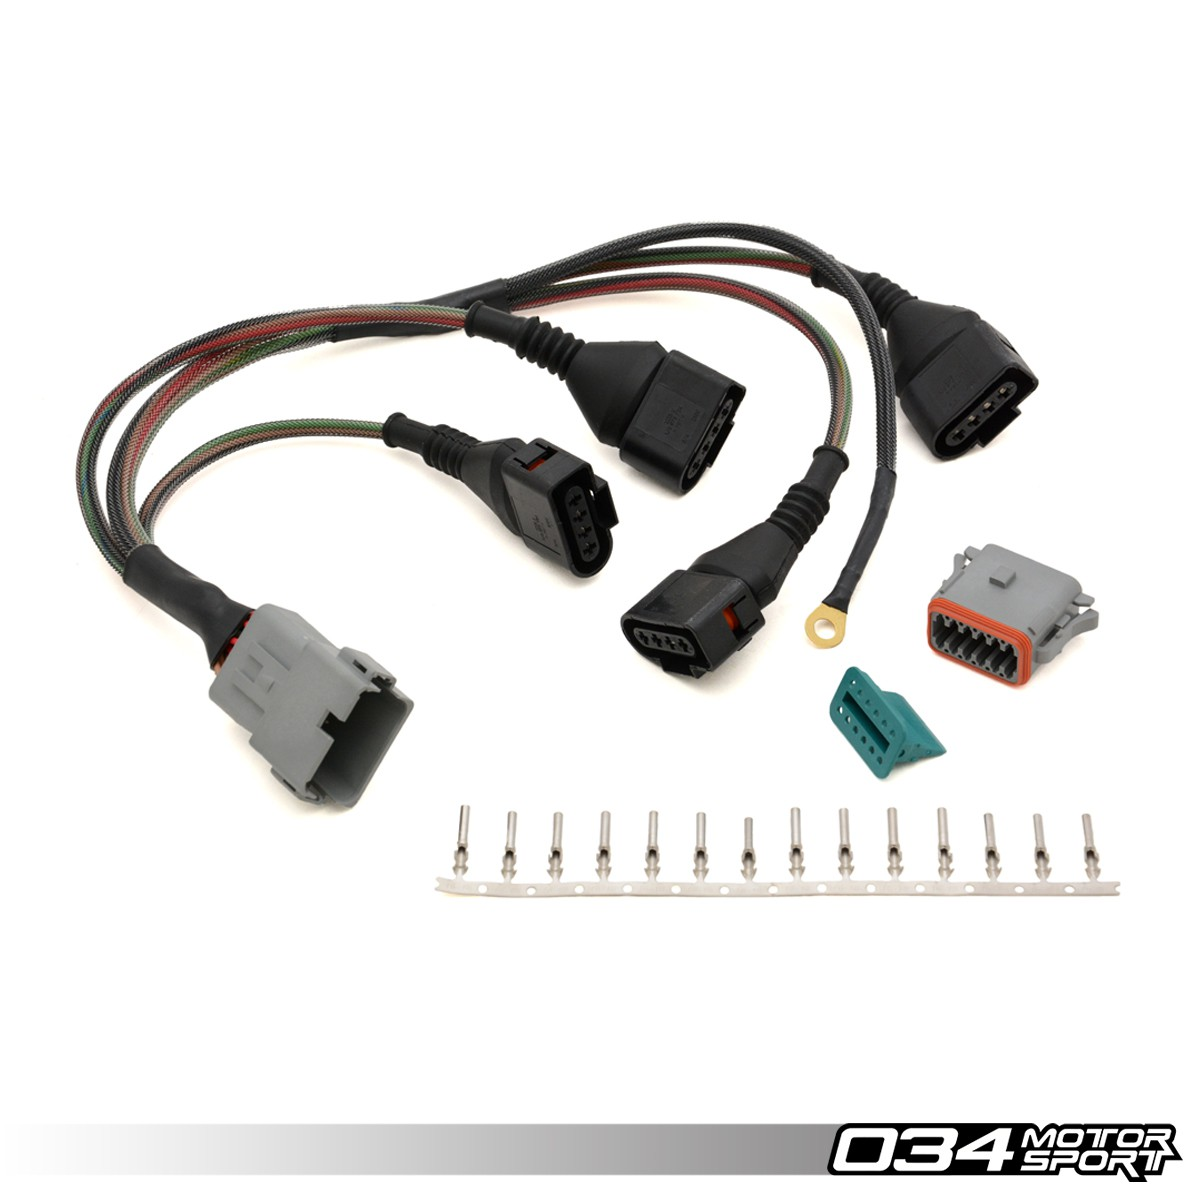 repair update harness audi volkswagen 18t with 4 wire coils 034motorsport 034 701 0004 2 repair update harness, audi volkswagen 1 8t with 4 wire coils 034